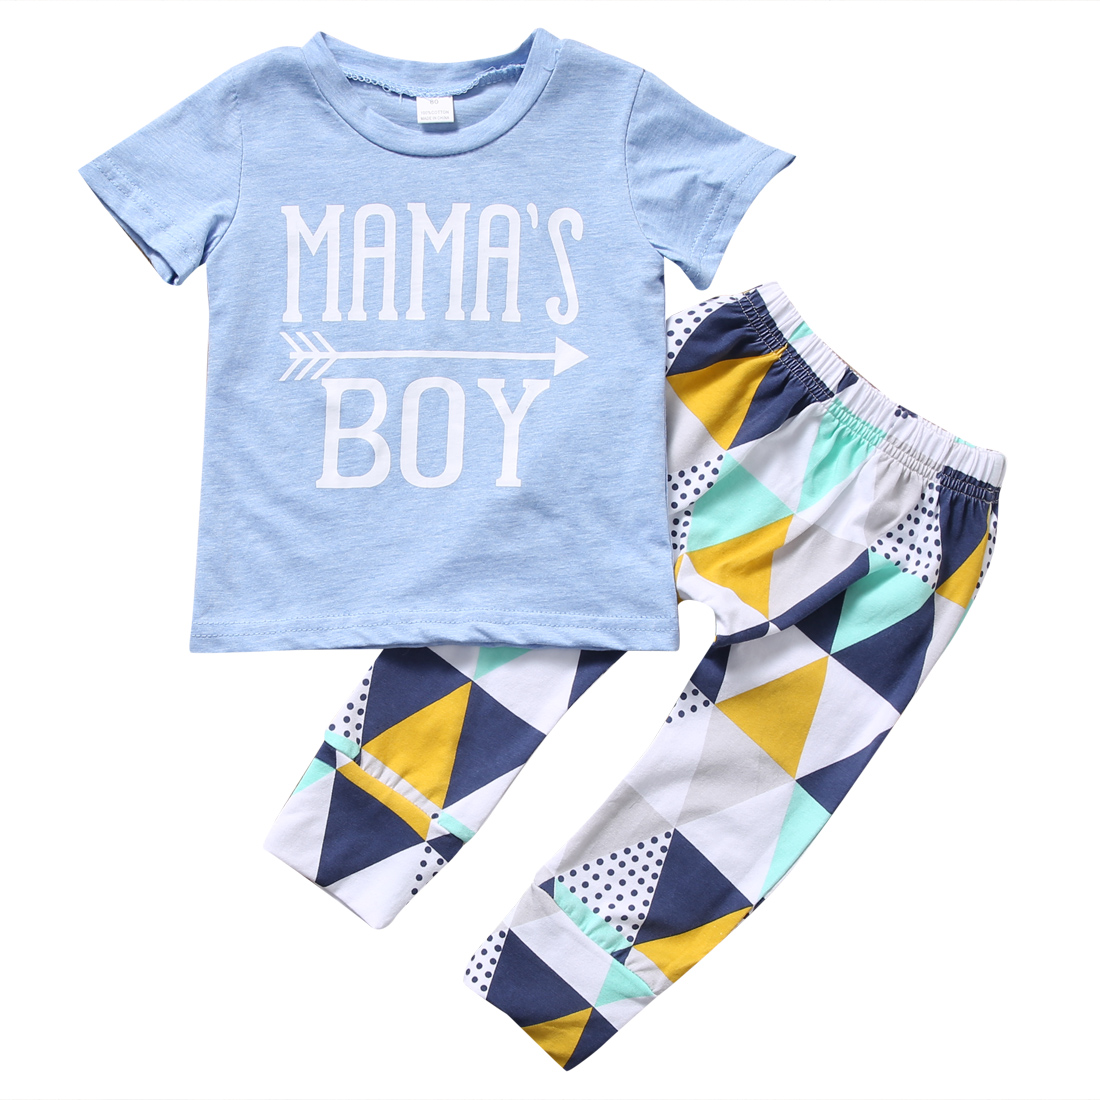 2017 Cute Newborn Baby Boy Clothes Summer Short Sleeve Mama's Boy Cotton T-shirt Tops Pant 2PCS Outfit Toddler Kids Clothing Set 2017 new fashion kids clothes off shoulder camo crop tops hole jean denim pant 2pcs outfit summer suit children clothing set